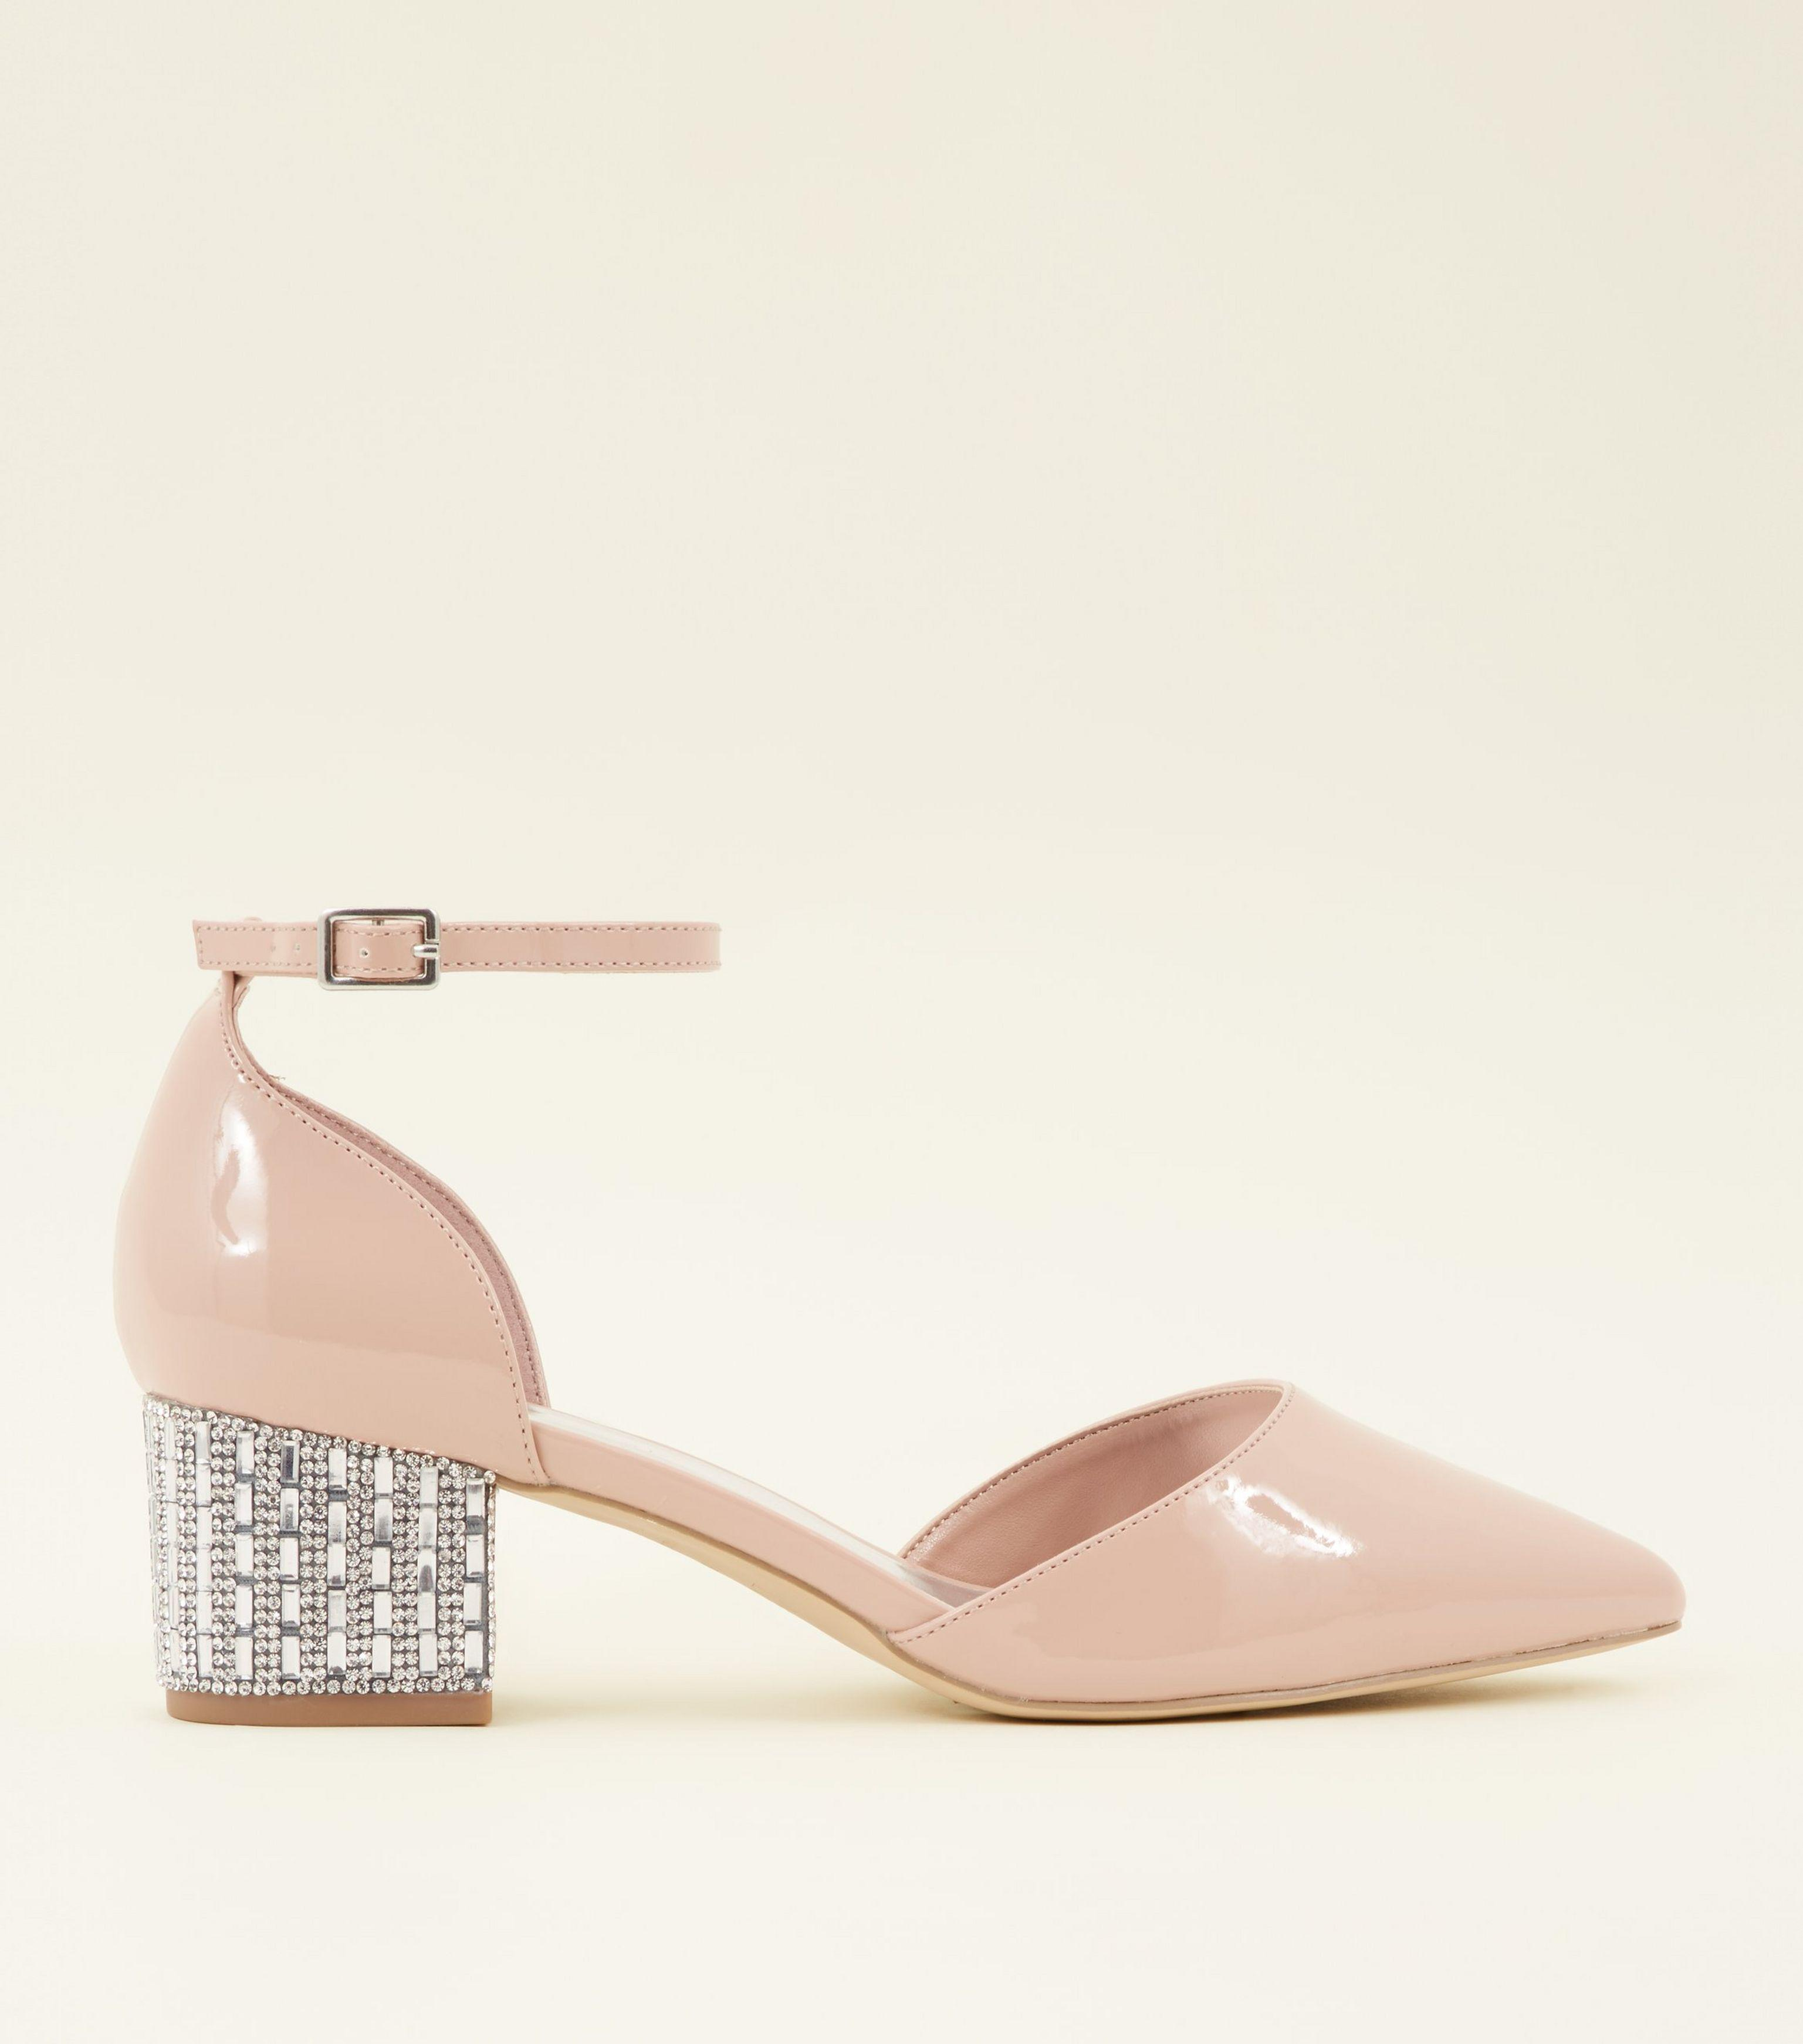 0642c0105ab New Look Wide Fit Nude Patent Diamanté Embellished Block Heels in ...